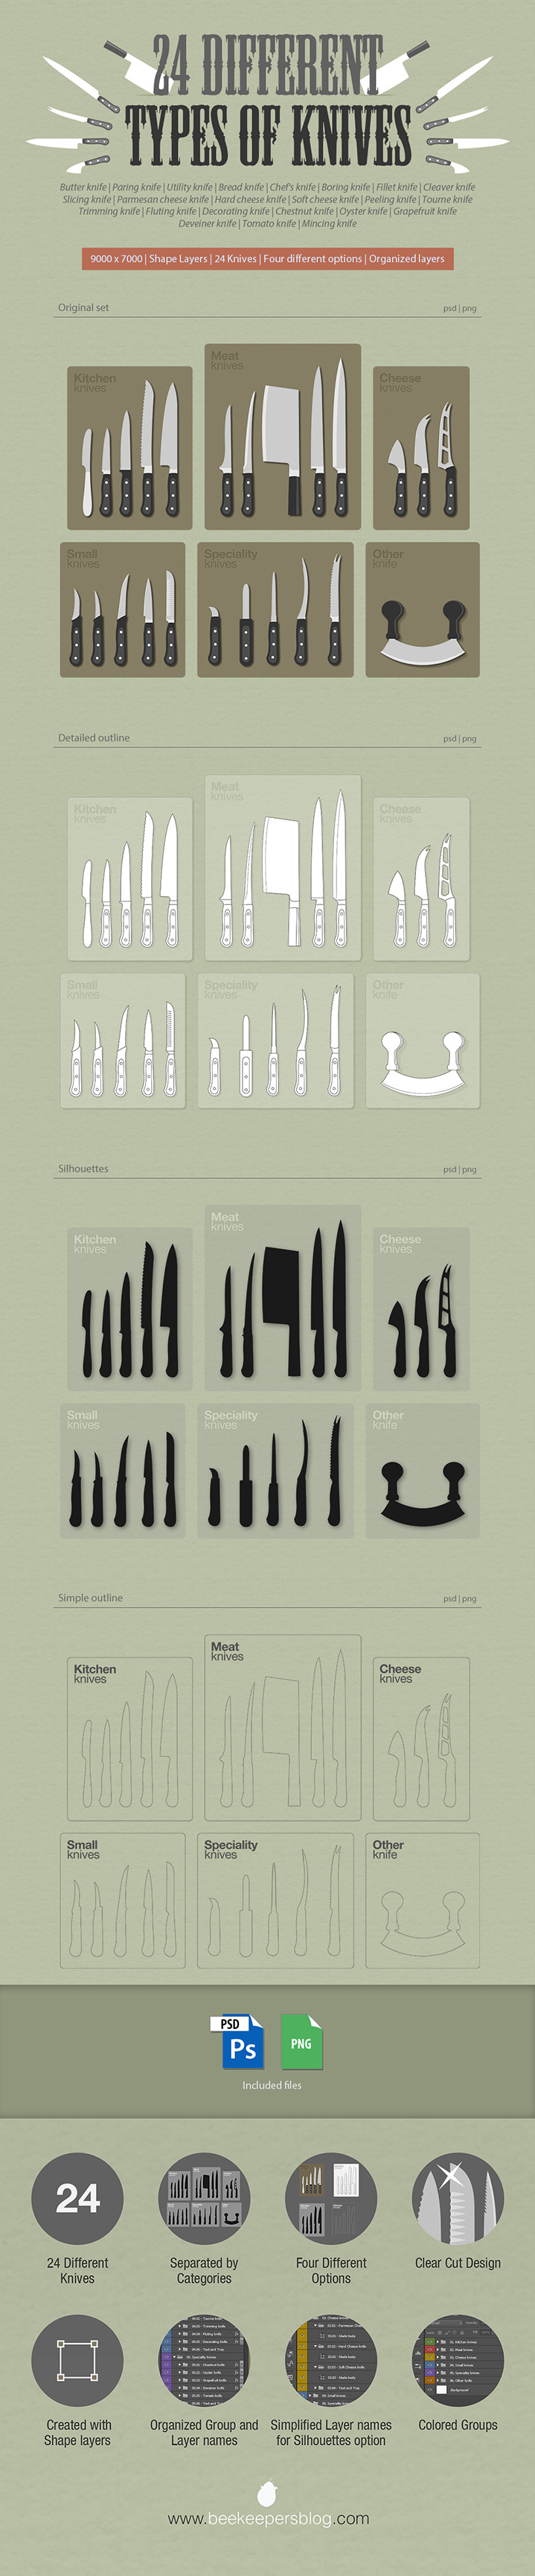 28 different types of knives.jpg